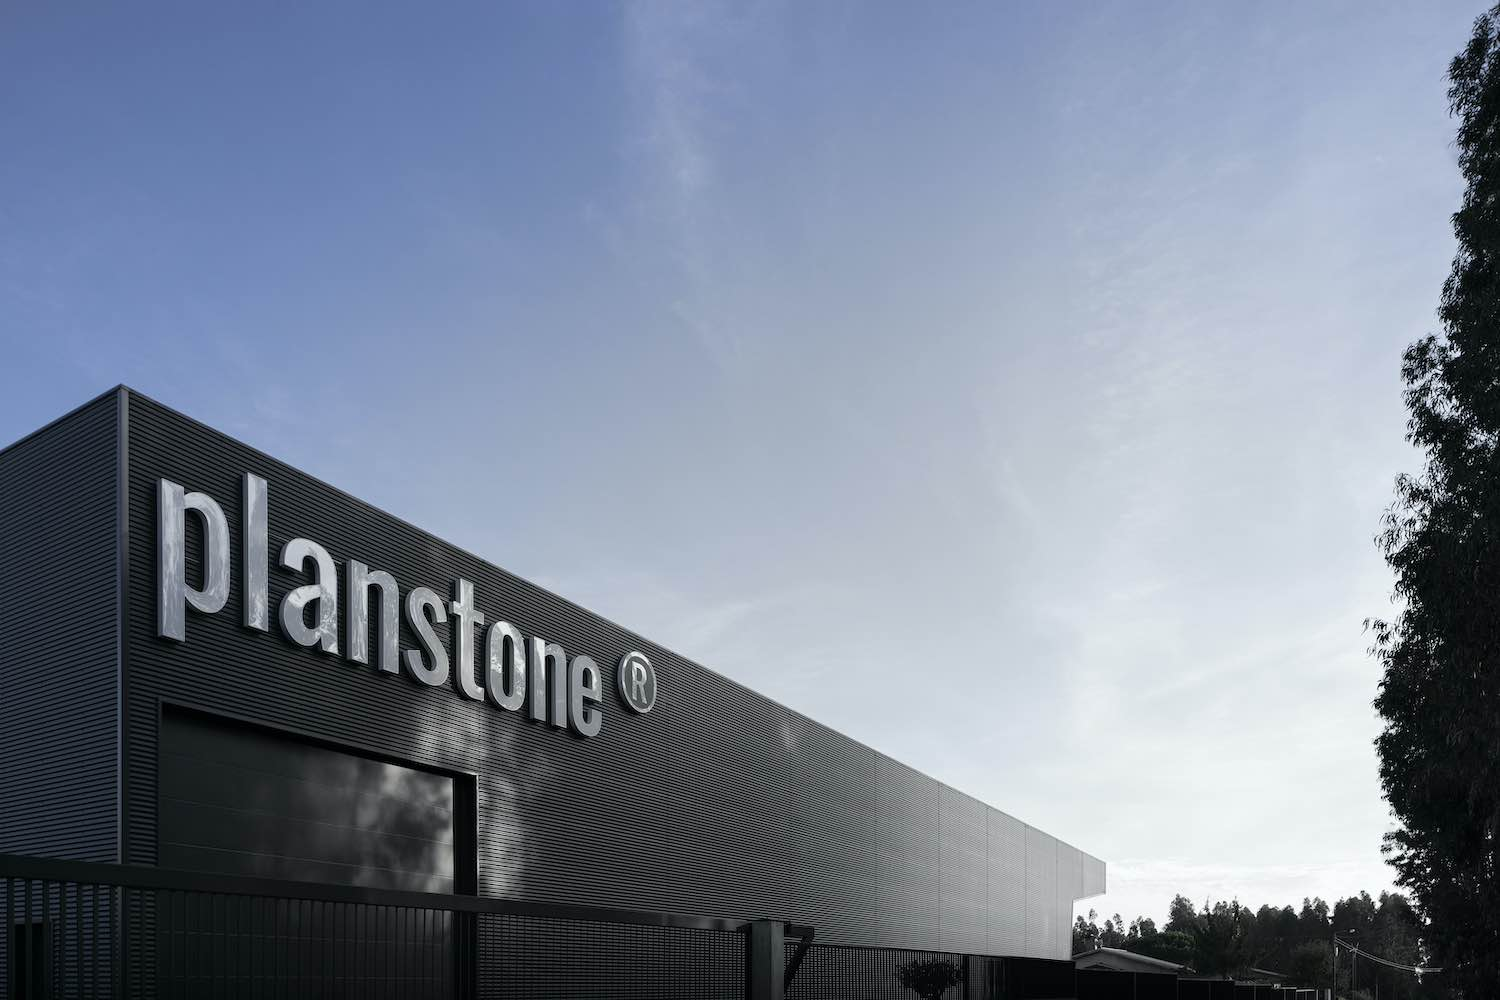 planstone warehouse